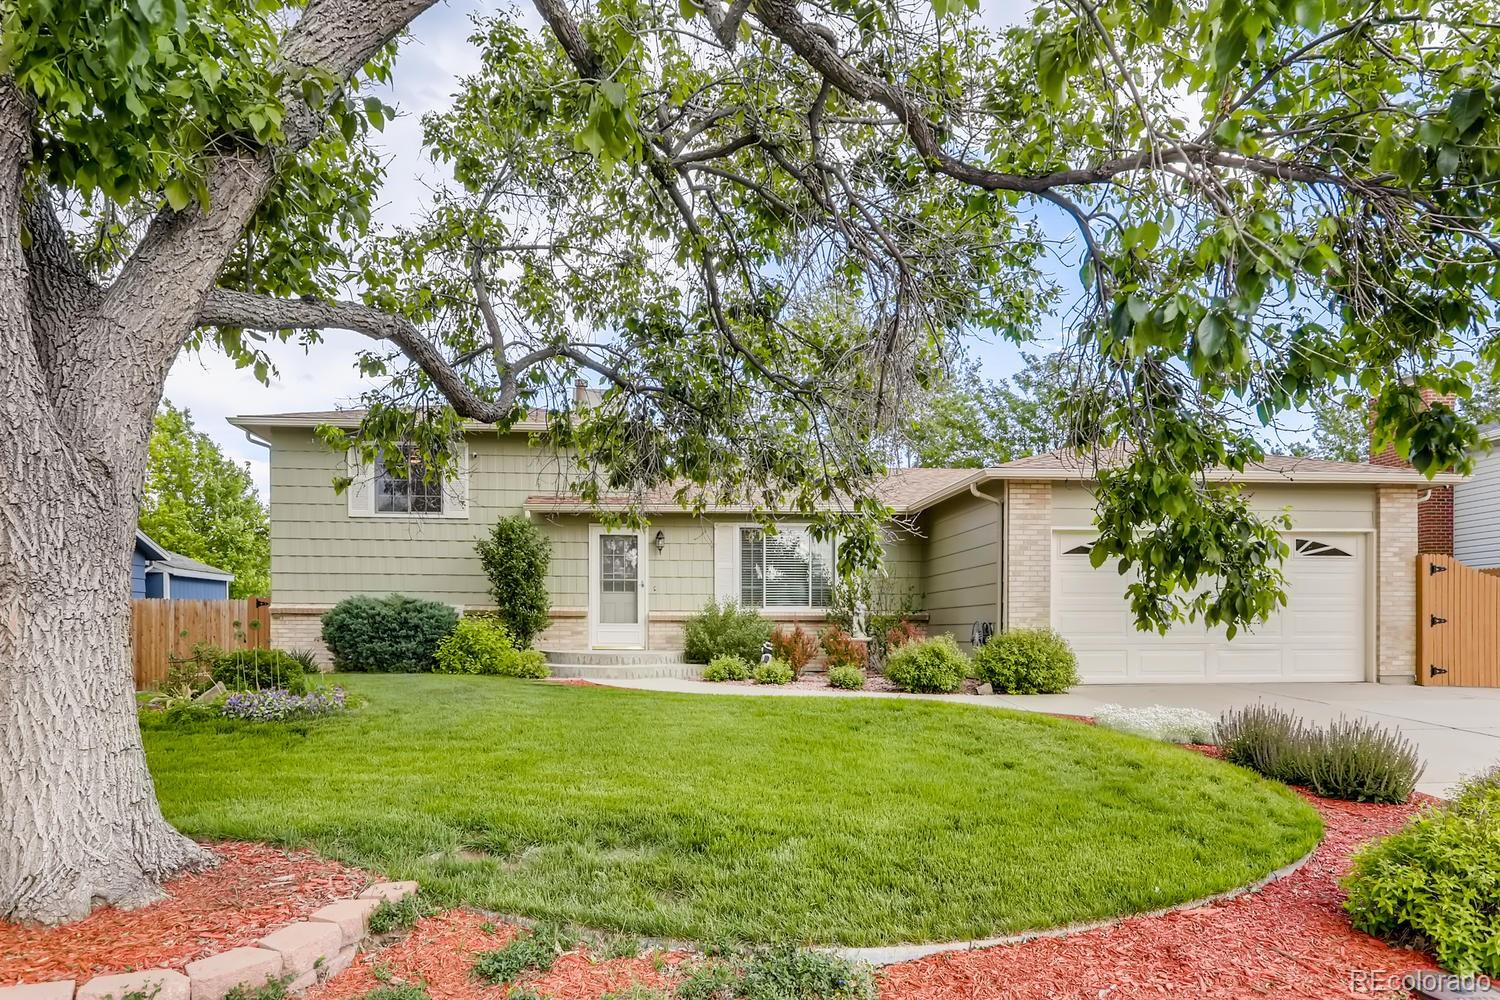 Introducing this amazing home in the heart of Aurora. Come enjoy your summer nights in this beautifully landscaped backyard with an extended patio under a pergola. This home has recently upgraded Anderson windows. It is also conveniently located near the light rail station. Don't miss out, Schedule your tour before this home is sold.